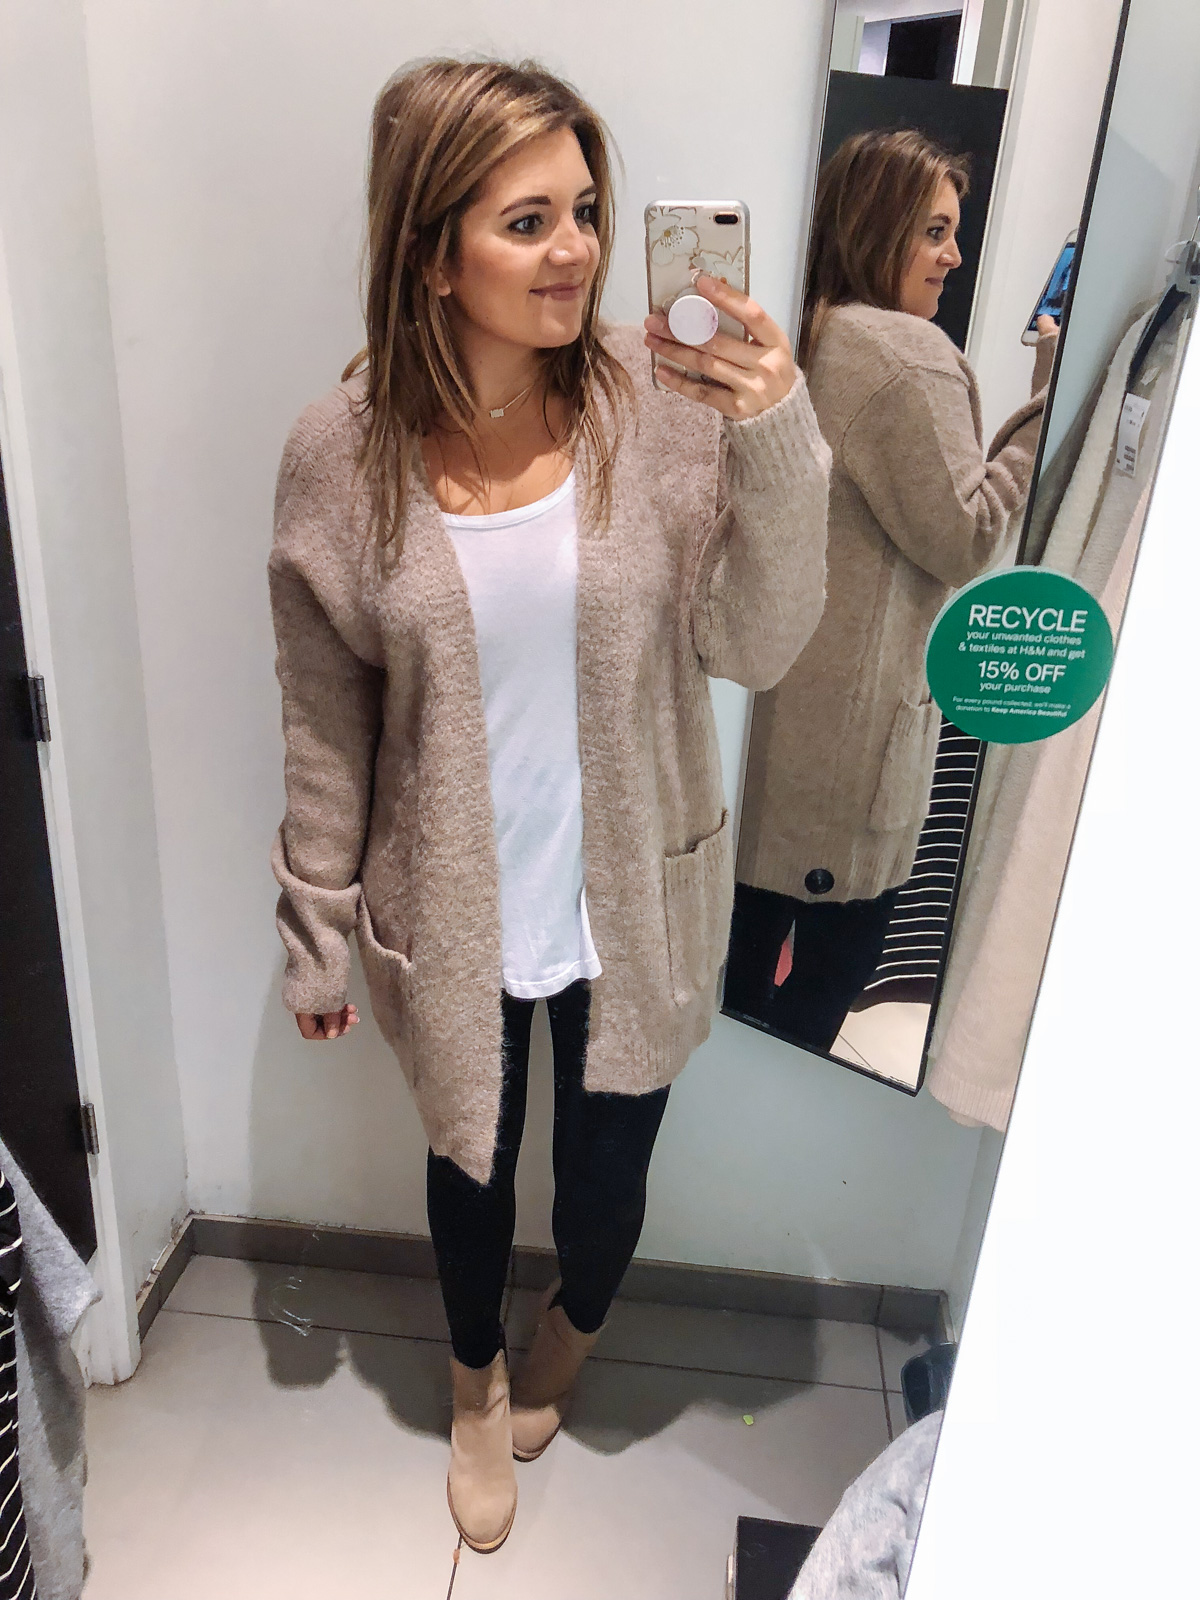 best long cardigan for leggings outfits | See reviews of 15 sweaters you can wear with leggings at bylaurenm.com!